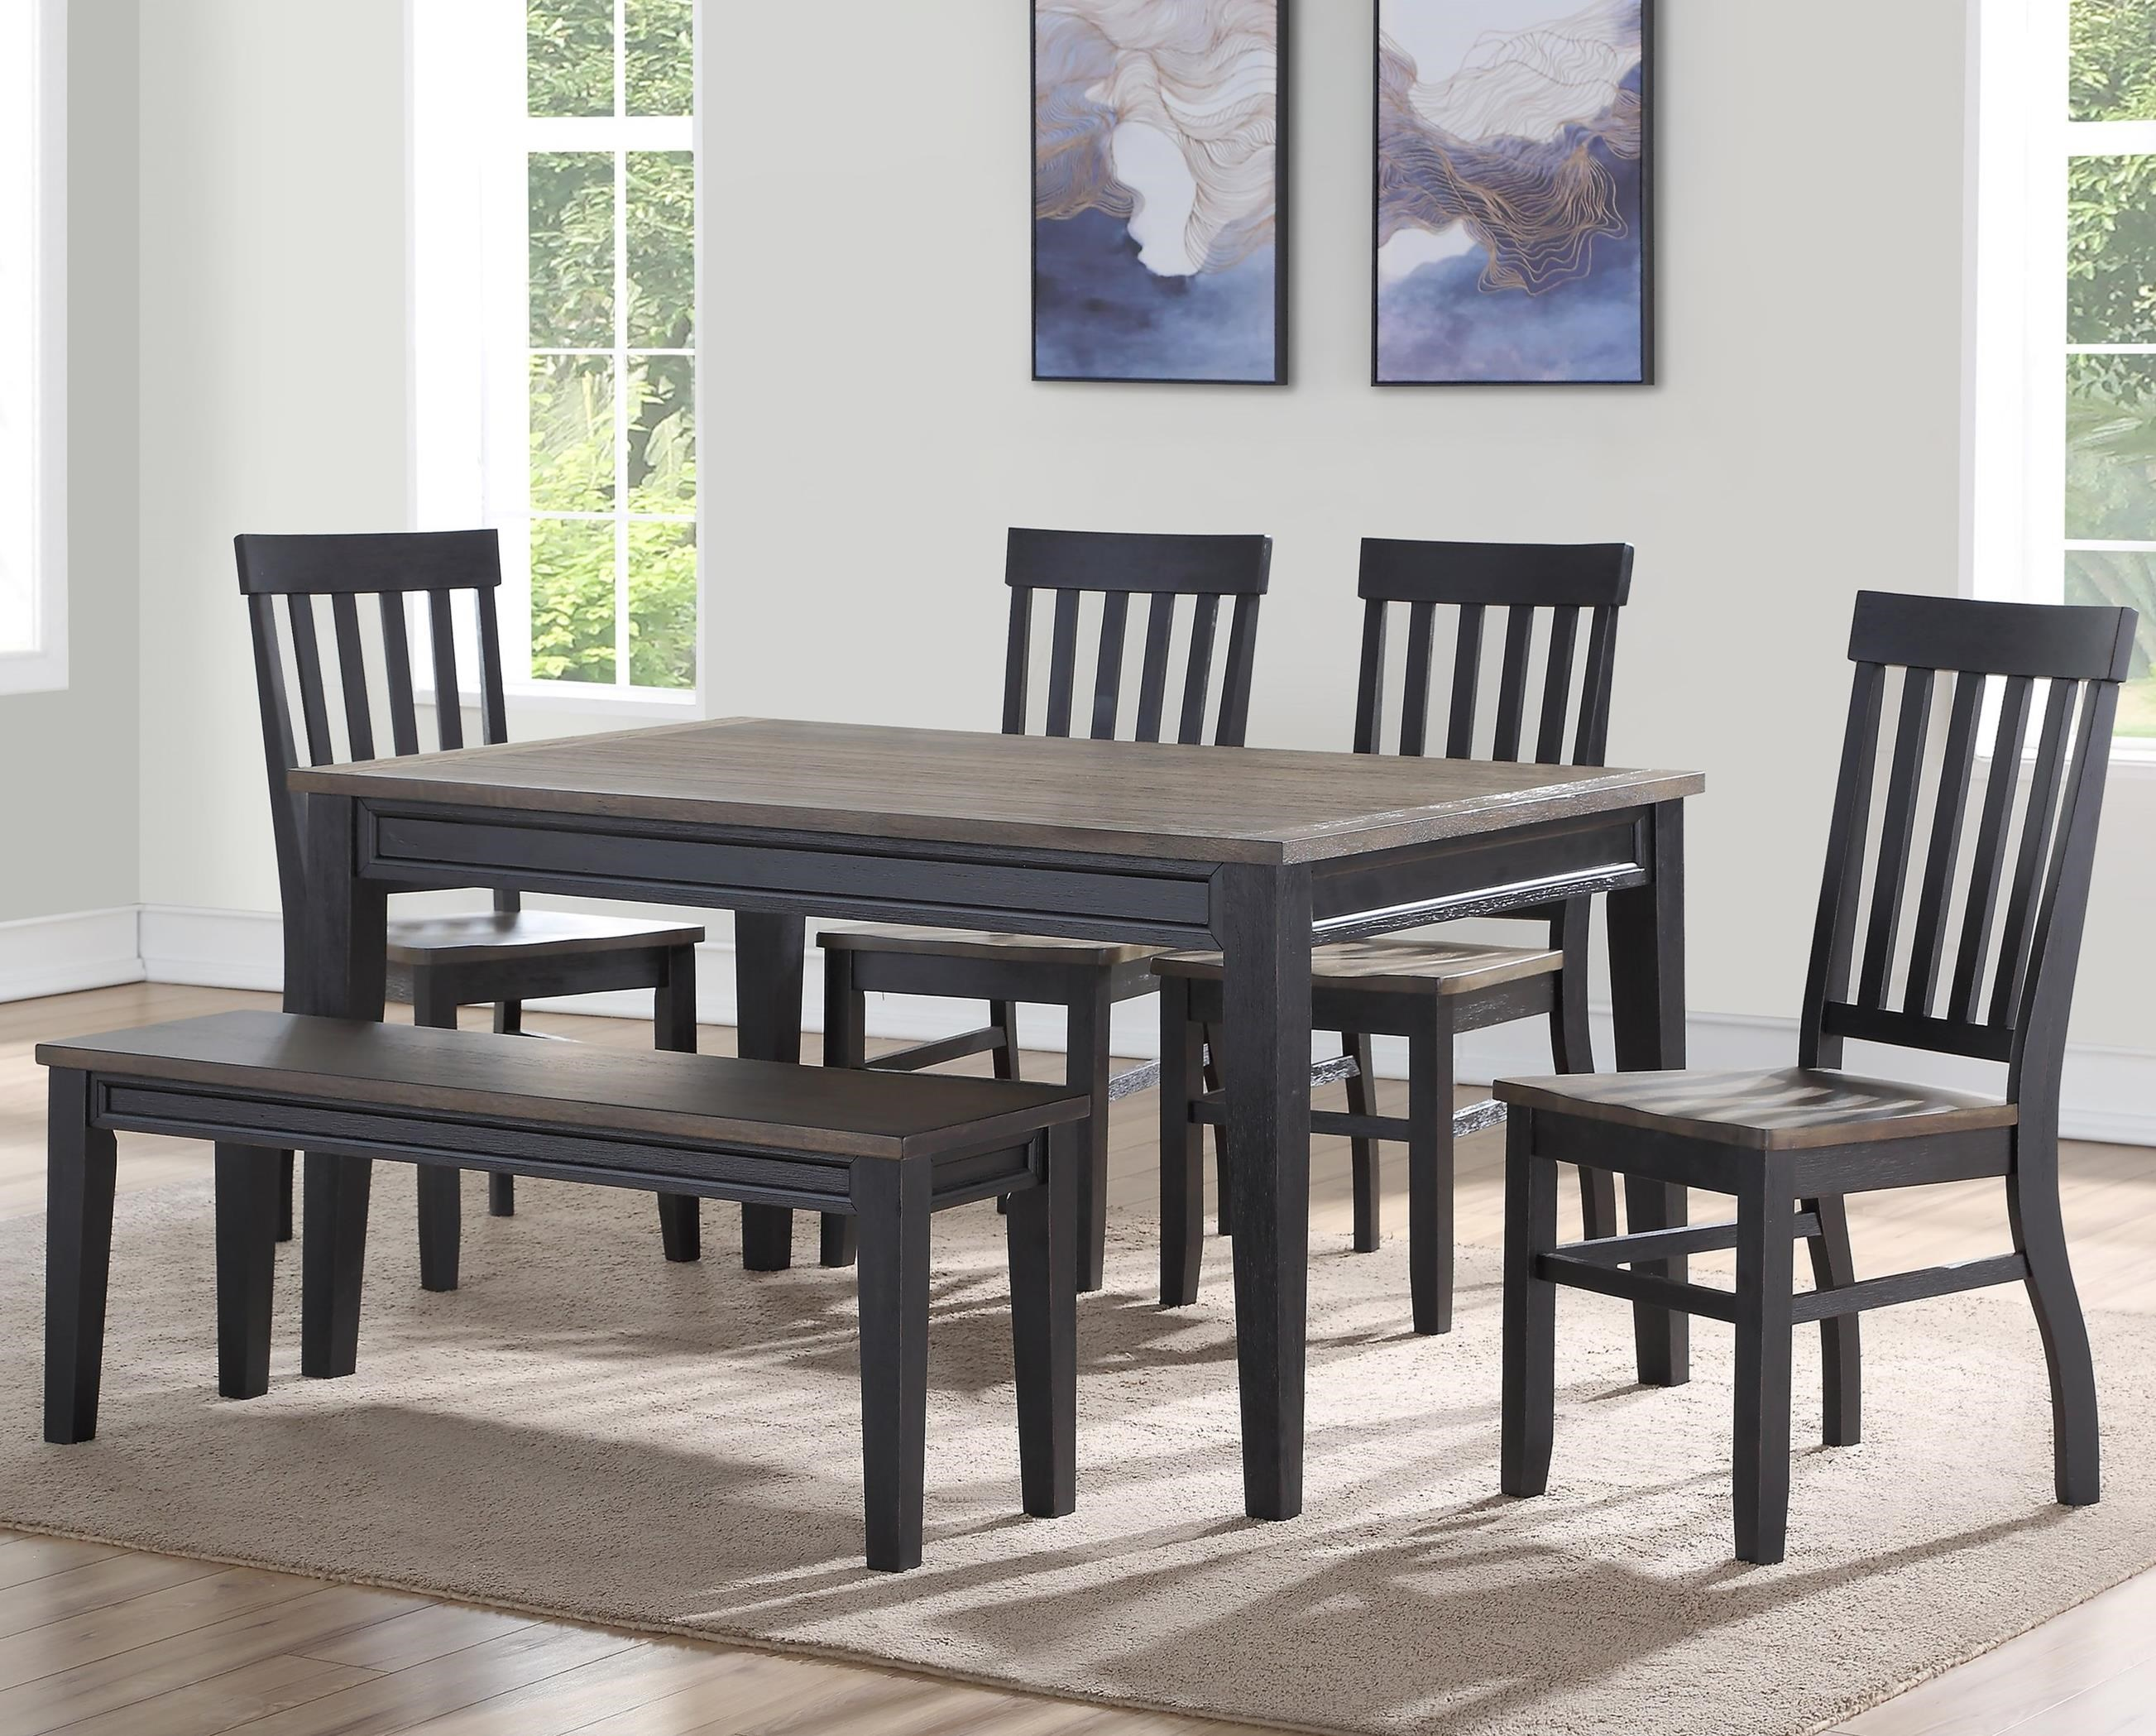 Raven Dining Set with Bench by Steve Silver at Walker's Furniture